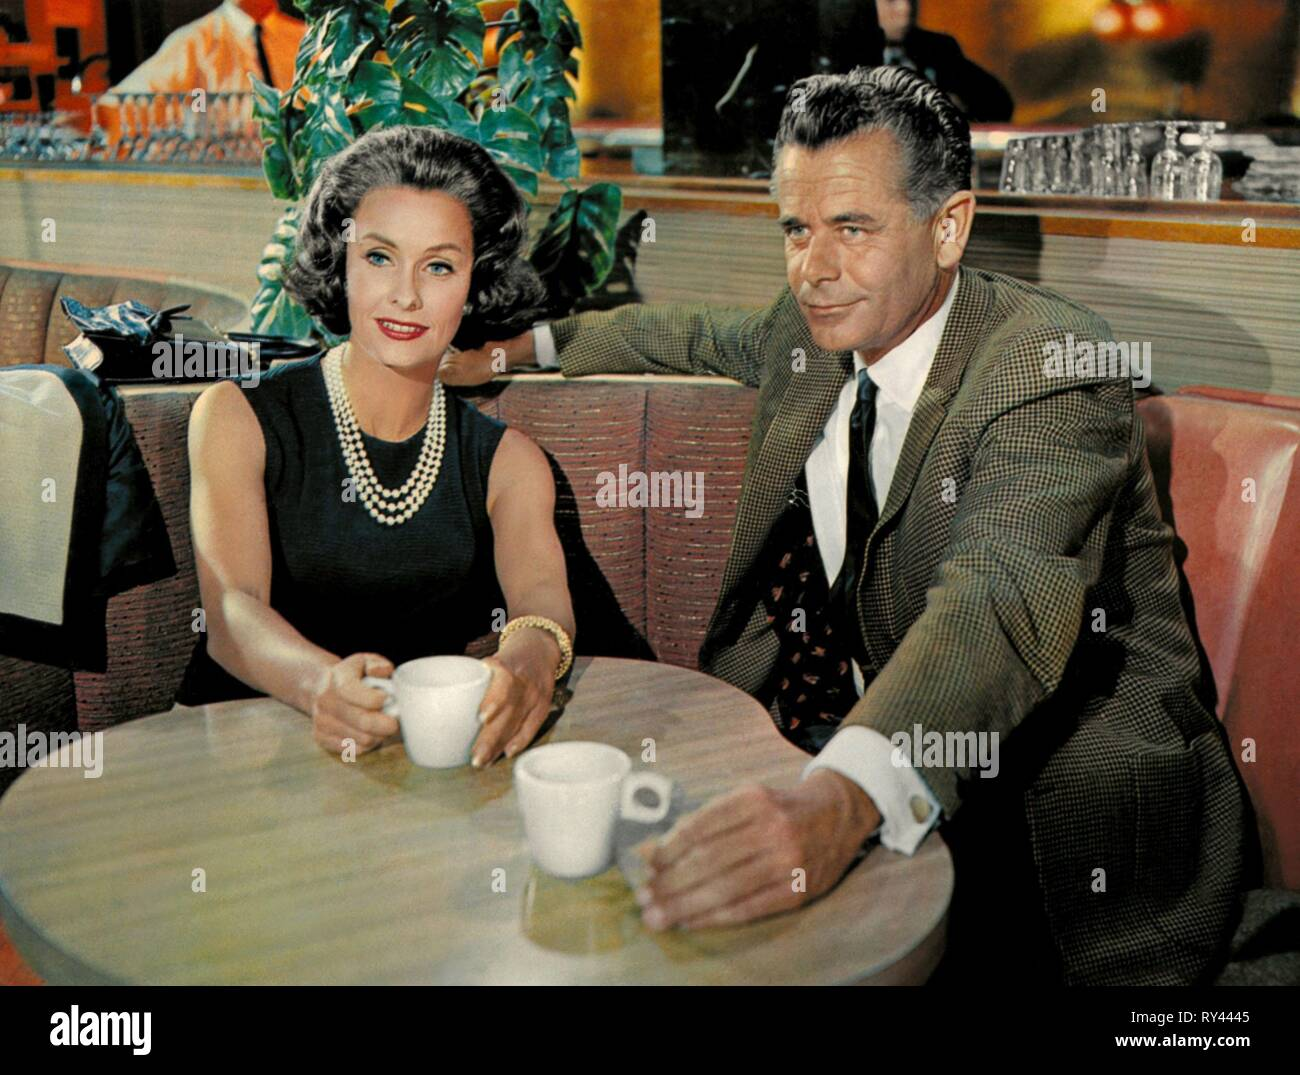 DINA MERRILL,GLENN FORD, THE COURTSHIP OF EDDIE'S FATHER, 1963 - Stock Image